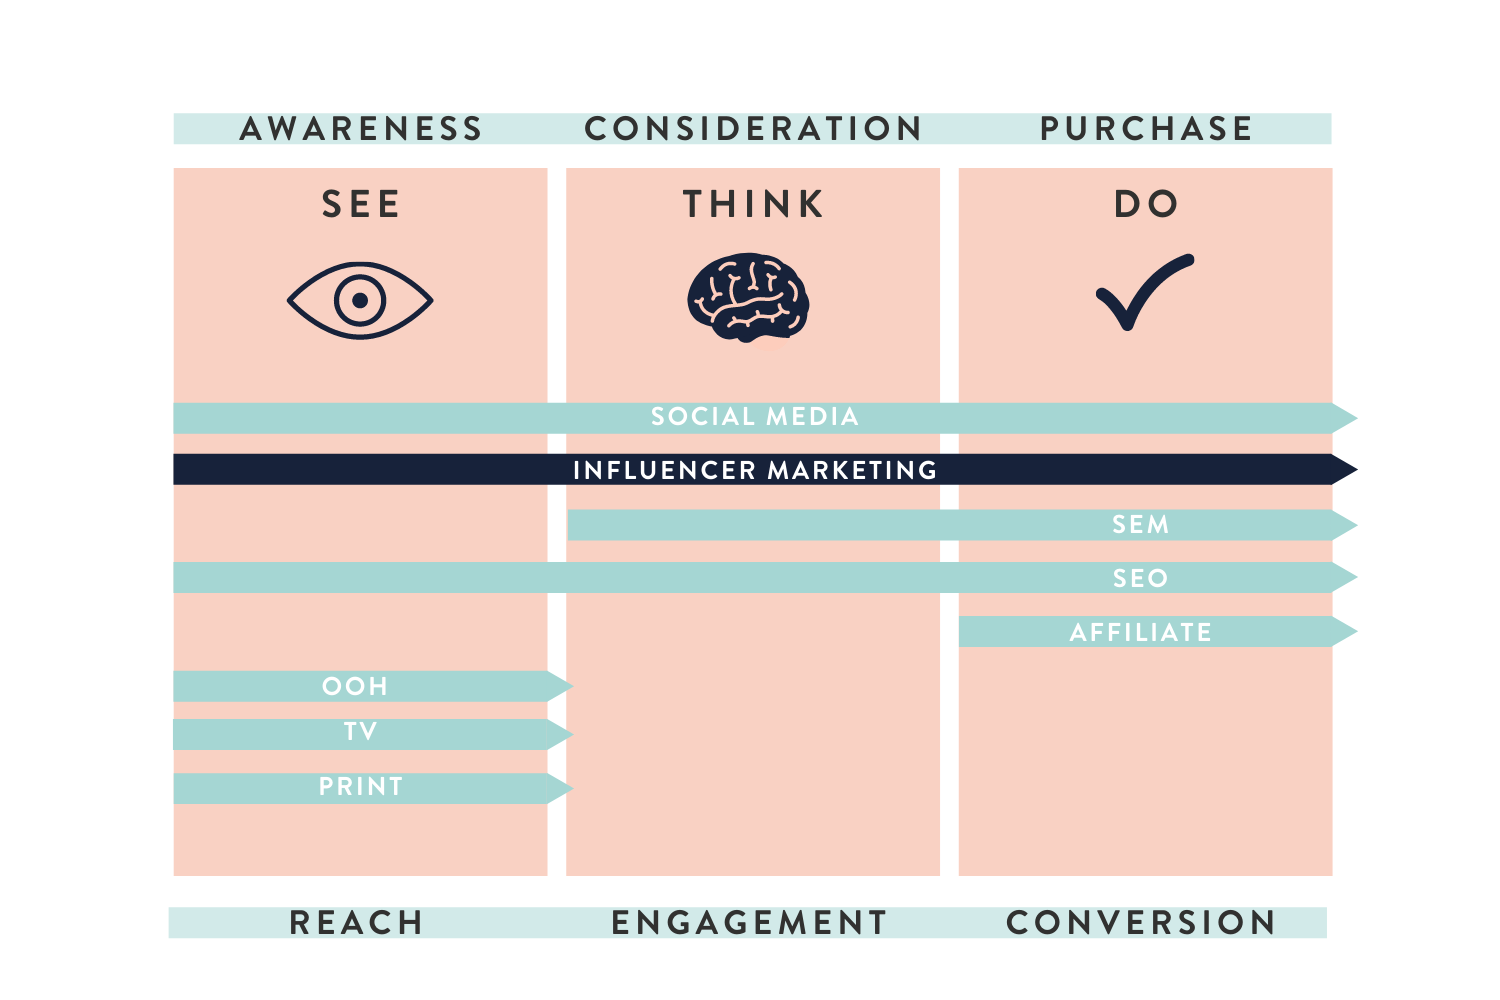 How does influencer marketing fit into the media mix?